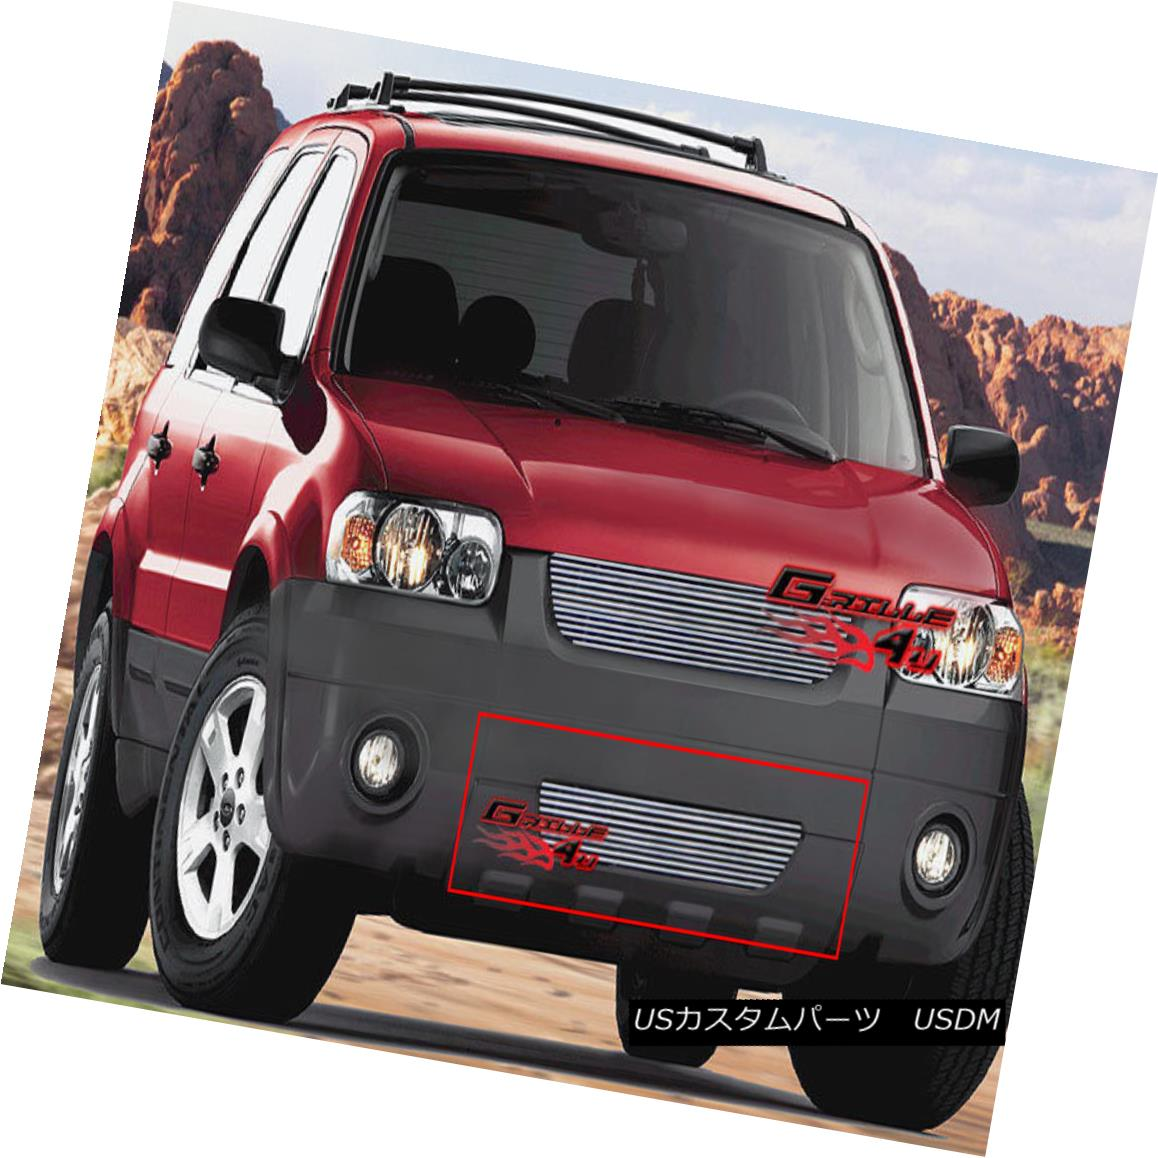 グリル Fits 2005-2007 Ford Escape Lower Bumper Billet Grille Insert 2005-2007 Ford Escapeロワーバンパービレットグリルインサート